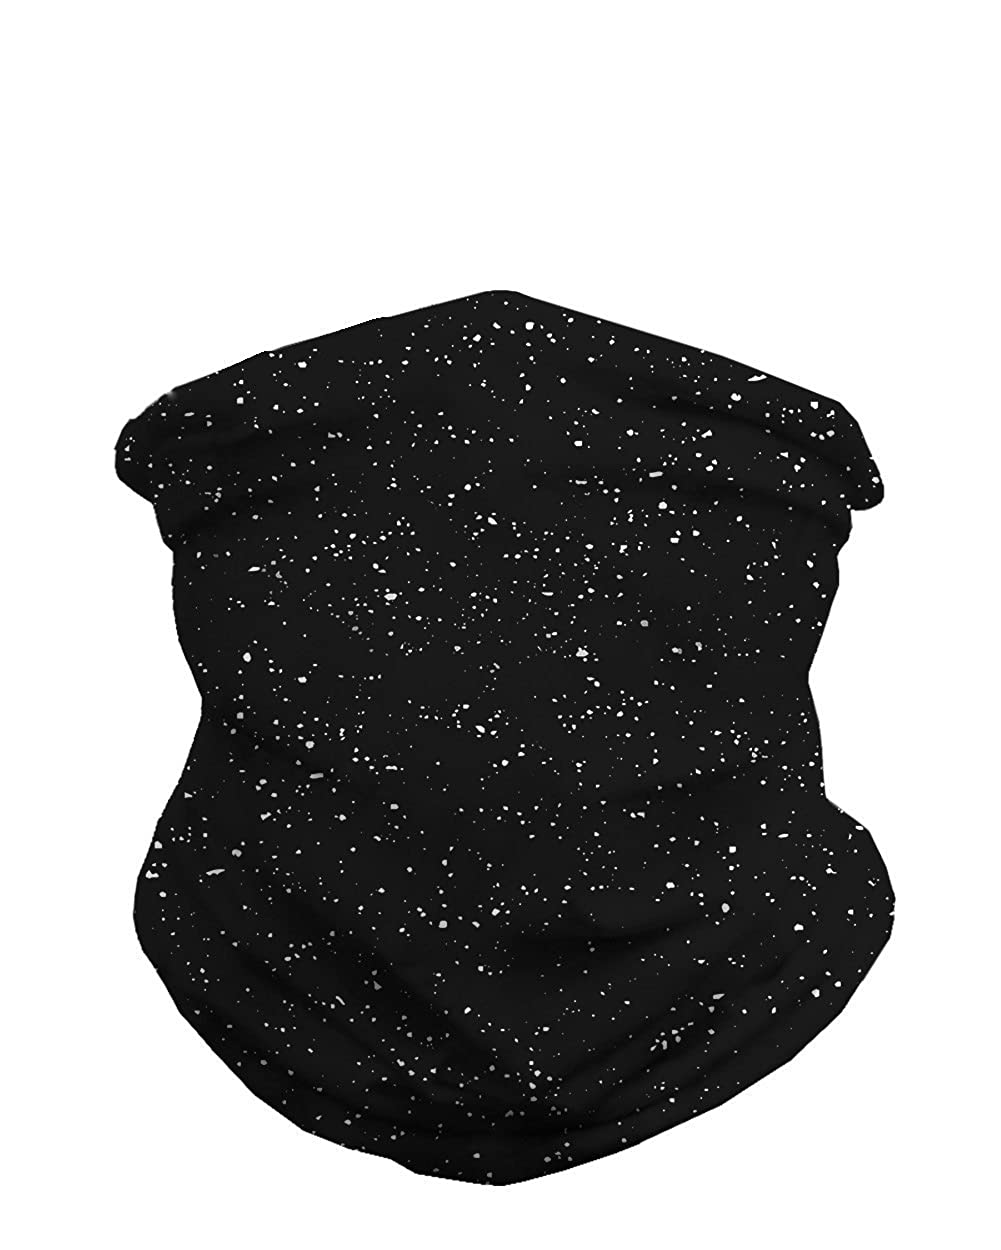 INTO THE AM Galaxy Face Mask Bandanas for Dust, Outdoors, Festivals, Sports AM7555-32-OS